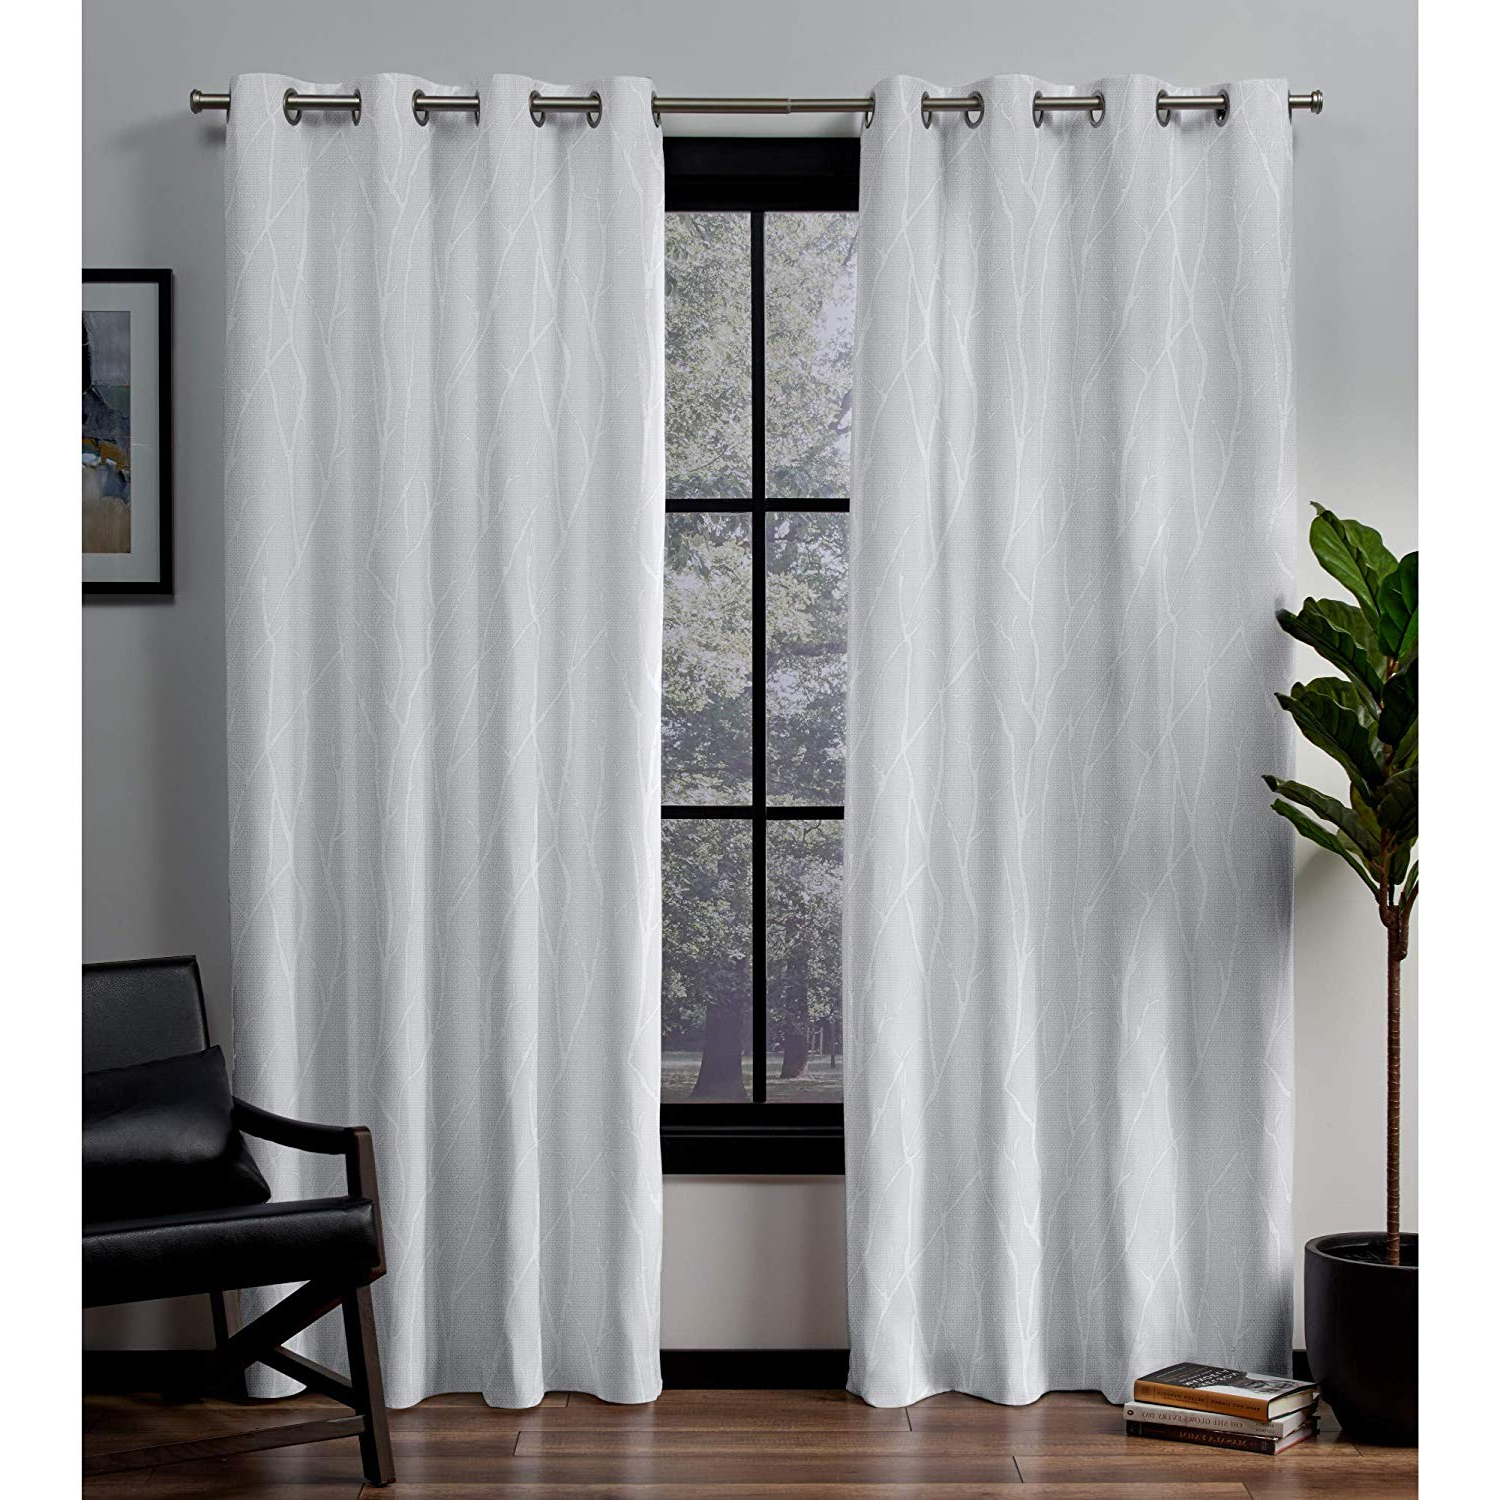 Exclusive Home Forest Hill Woven Blackout Grommet Top Curtain Panel Pair, Winter, 52x84 With Regard To Most Popular Forest Hill Woven Blackout Grommet Top Curtain Panel Pairs (View 5 of 20)